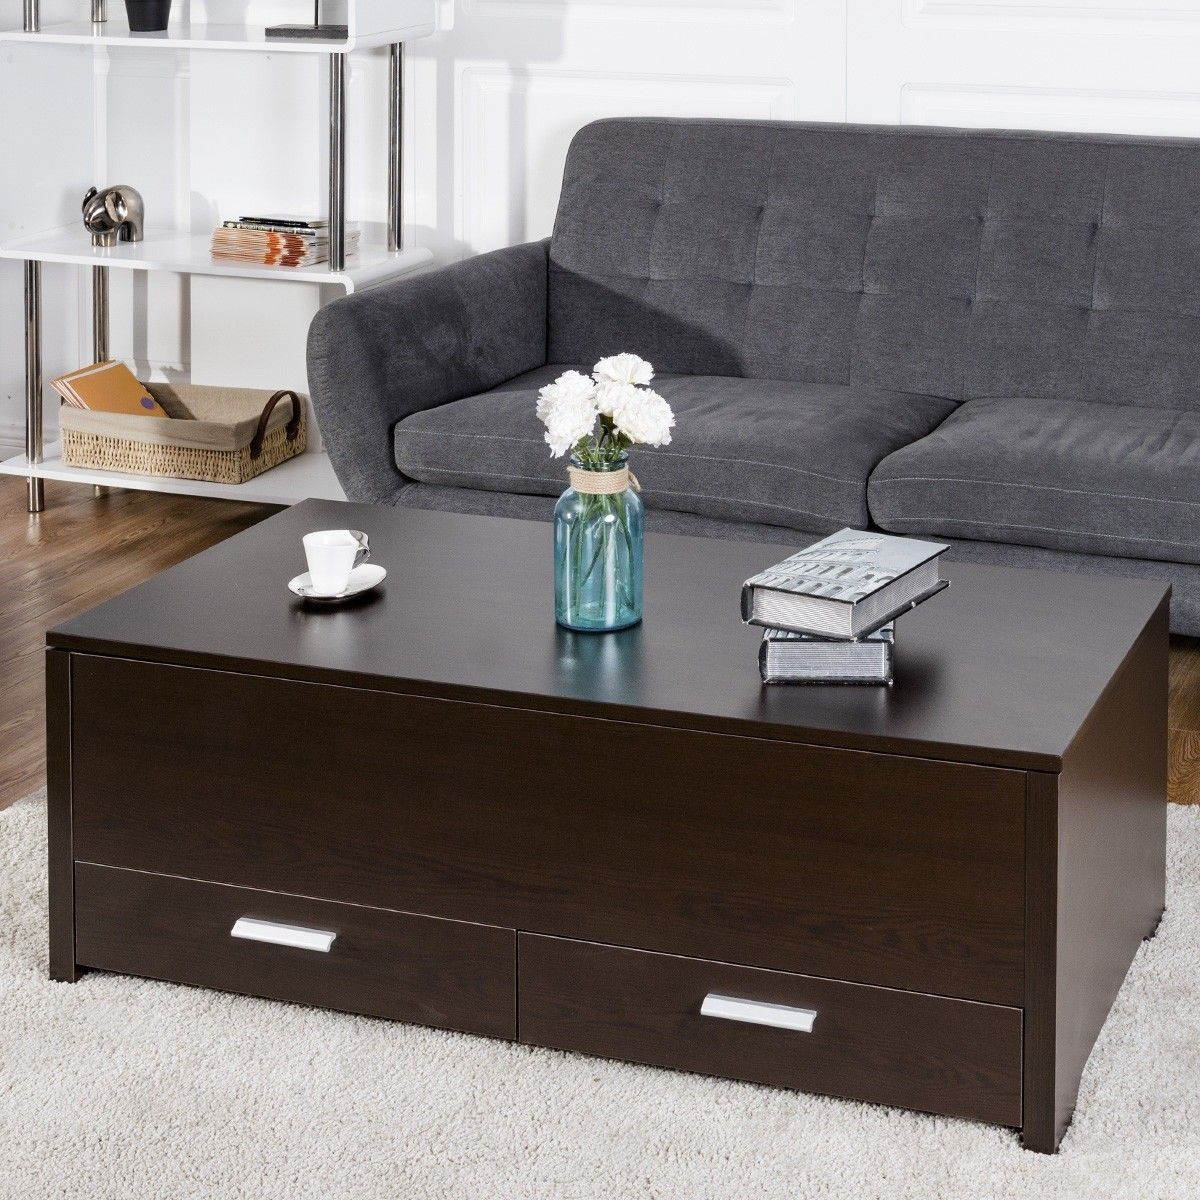 Sliding Top Trunk Coffee Table With Hidden Compartment 2 Drawers Coffee Table Trunk Latest Coffee Tables Coffee Table [ 1200 x 1200 Pixel ]